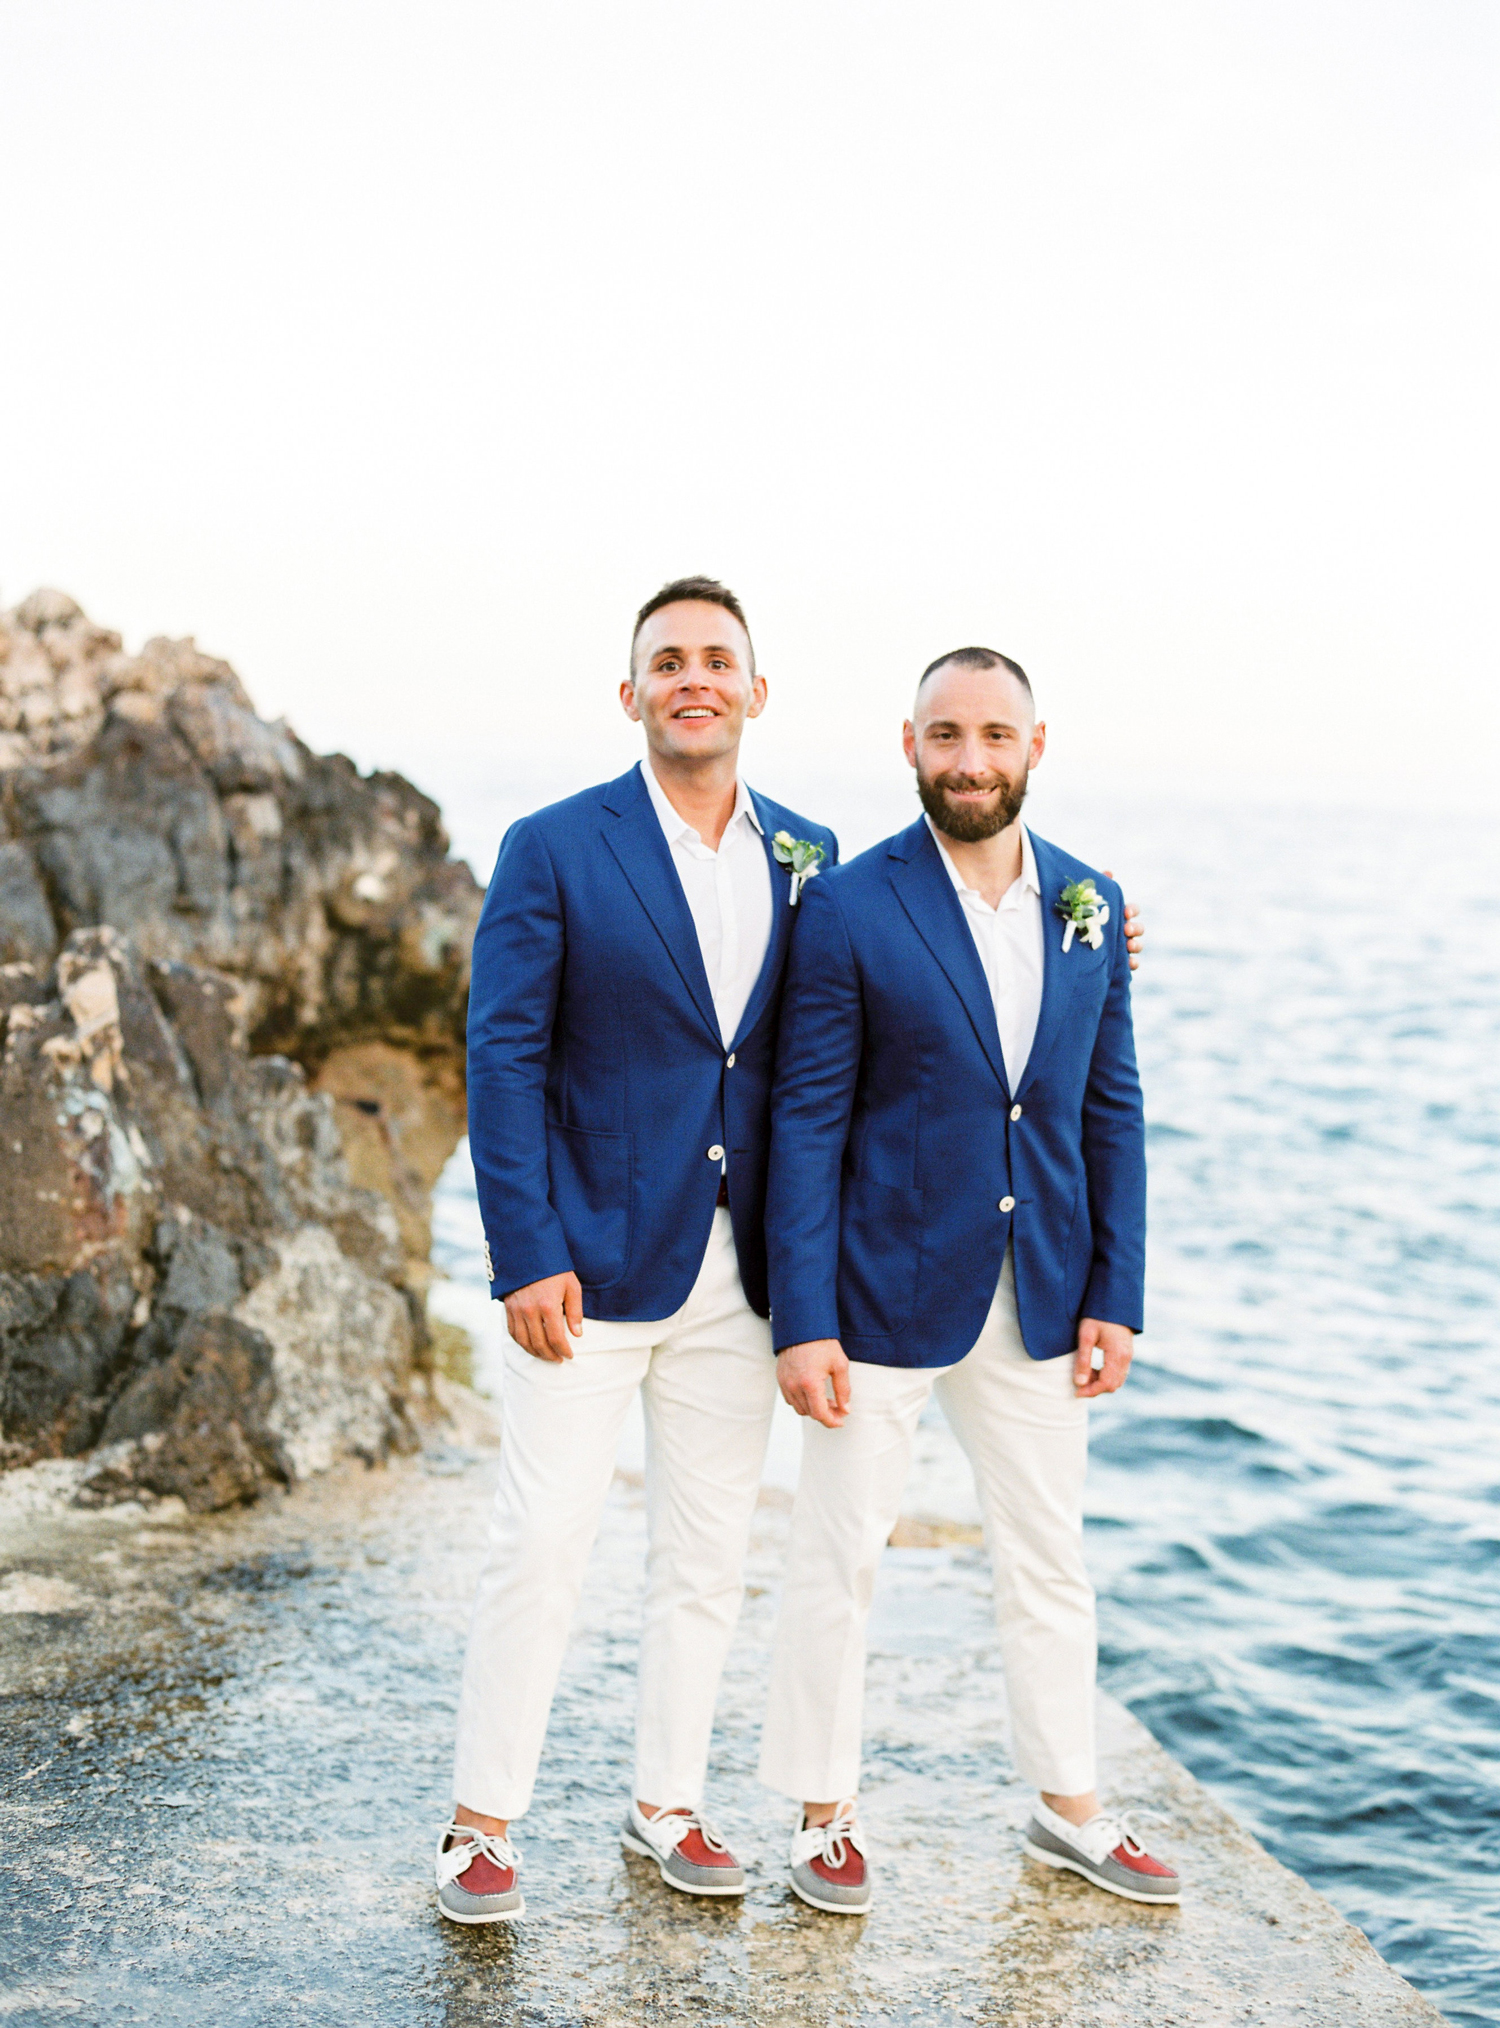 grooms wearing all white suits with royal blue jackets